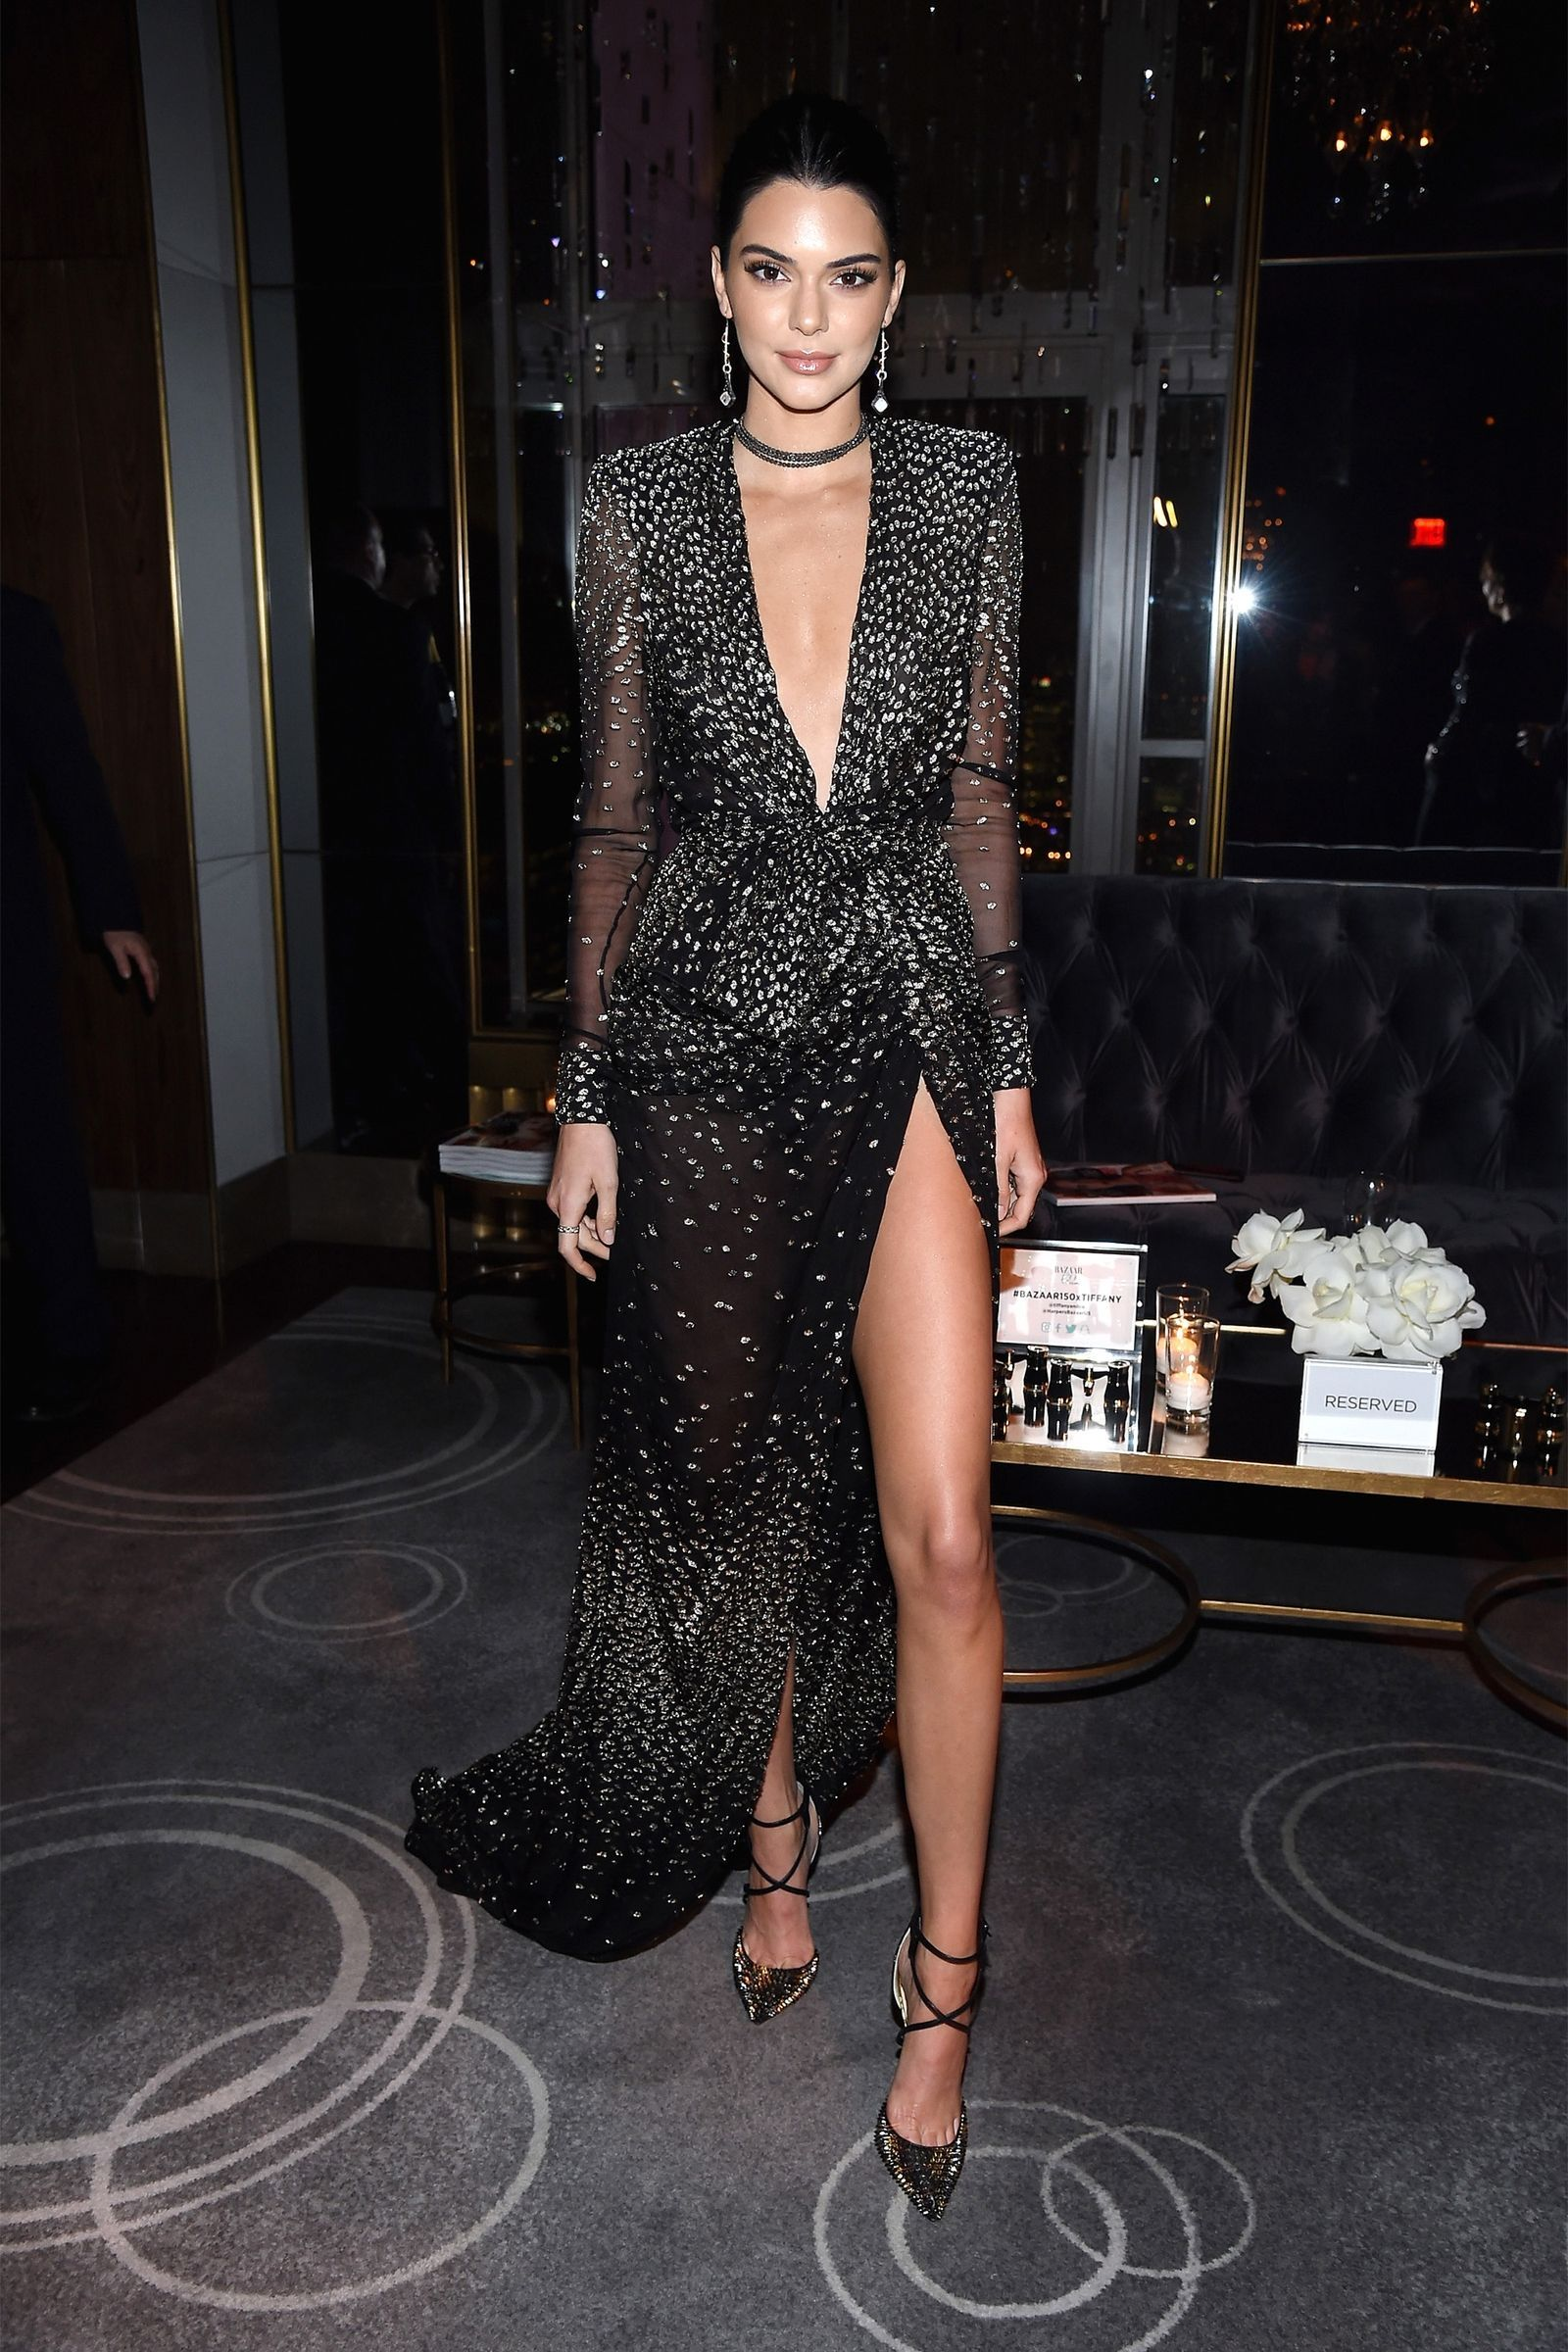 c5769962cae2 April 19, 2017 - HarpersBAZAAR.com Kendall Jenner Outfits, Kendall And  Kylie Jenner